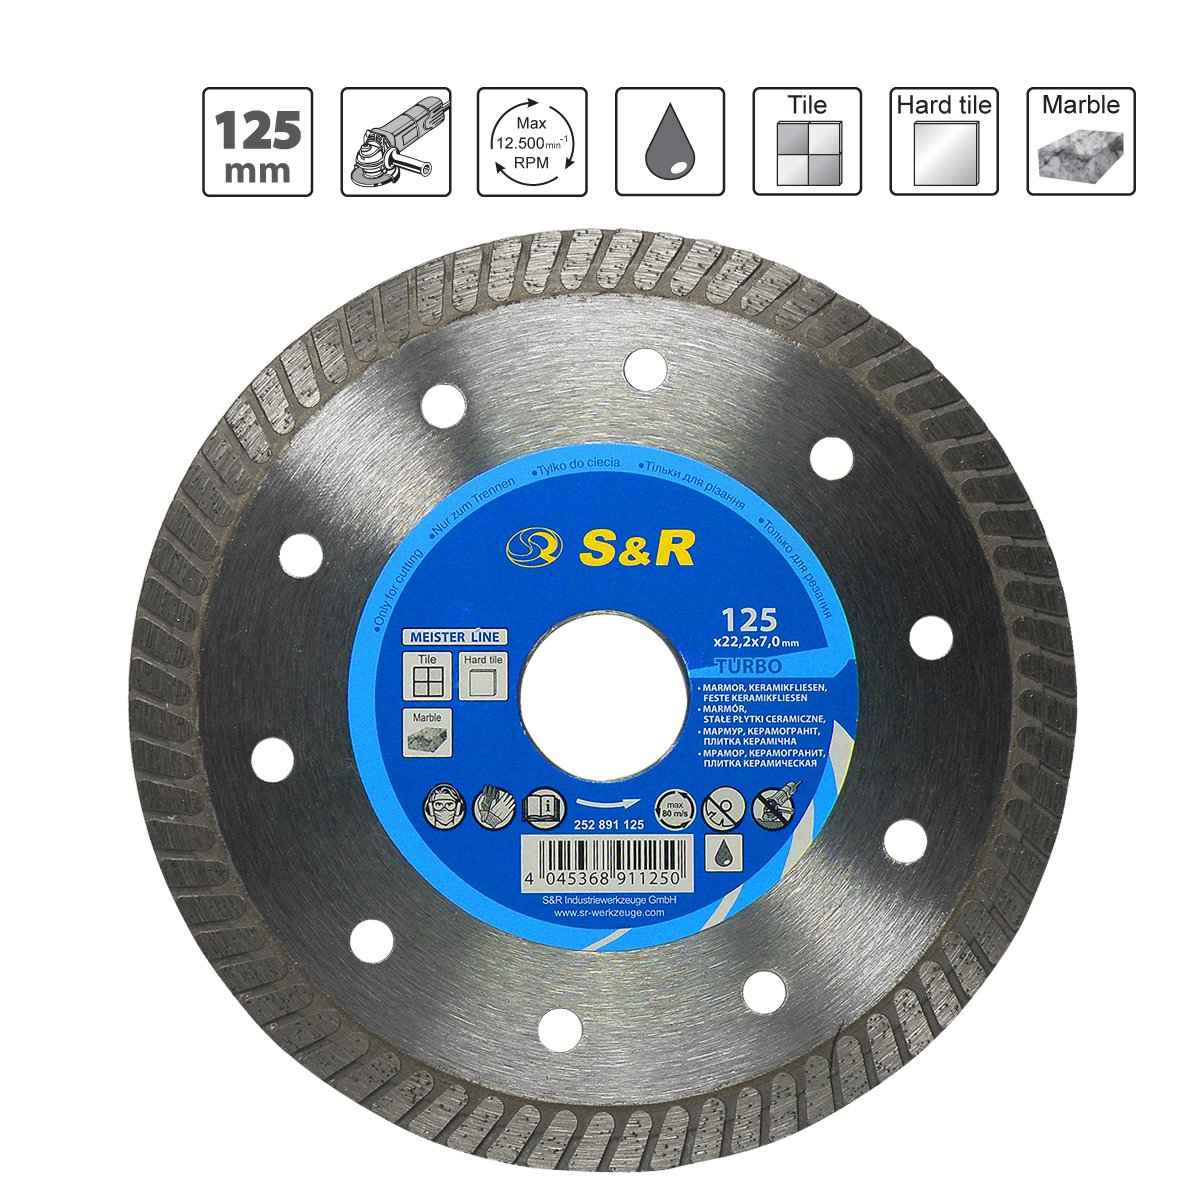 S/&R Diamond Blade // Diamond Cutting Disc 125 x 1.6 marble 5.5 Professional quality x 22.2 for cutting CERAMIC tiles hard ceramic limestone and other hard materials tiles granite